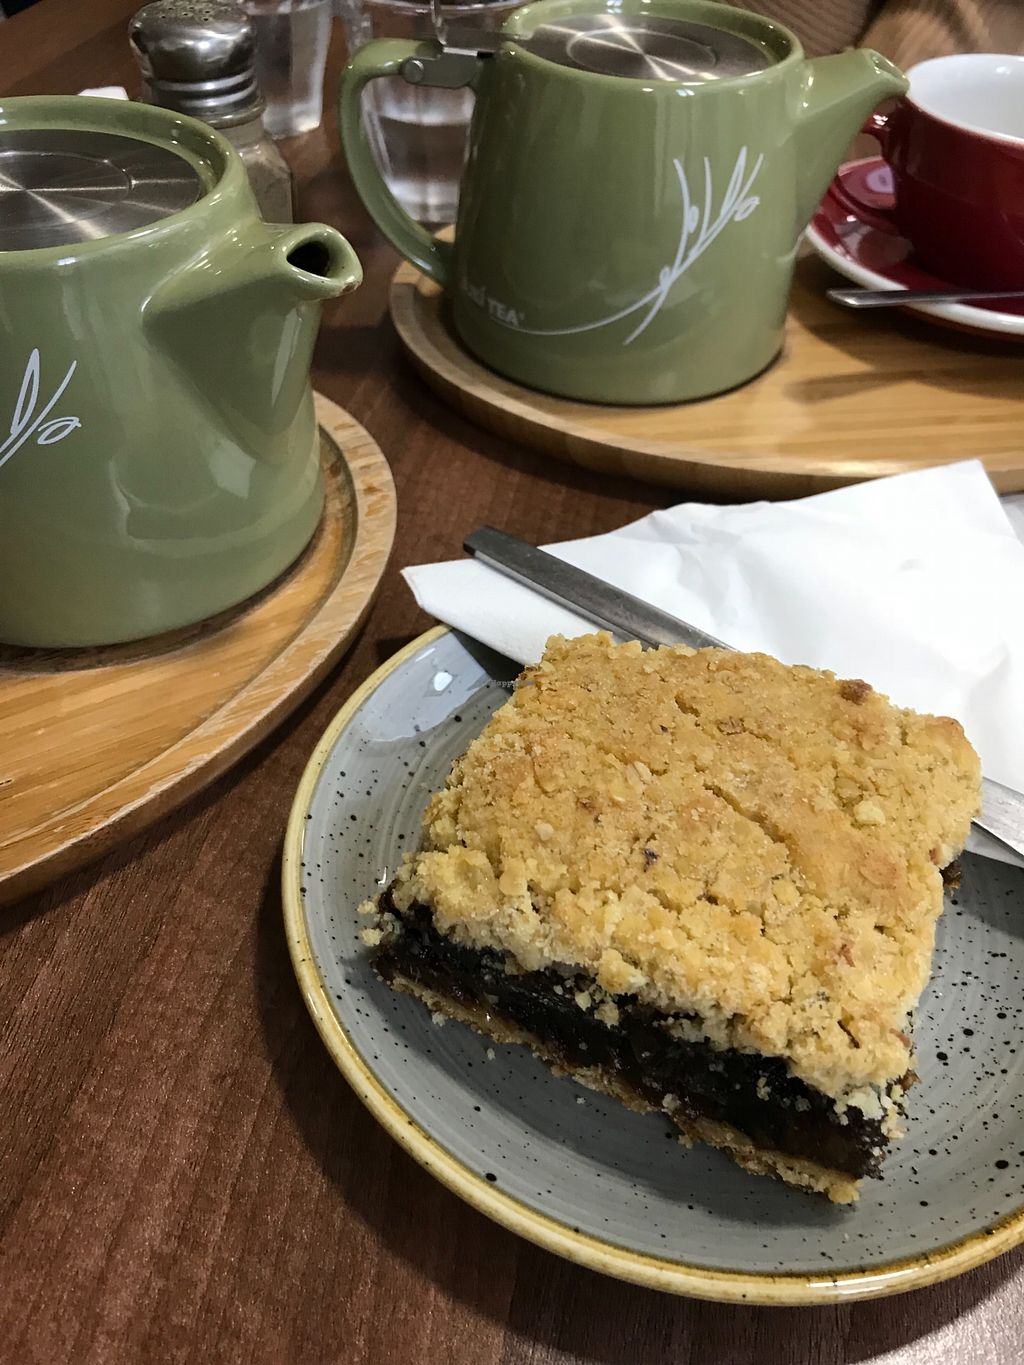 """Photo of The Flame Tree Cafe  by <a href=""""/members/profile/AshleighC"""">AshleighC</a> <br/>Vegan Date Crumble  <br/> February 19, 2018  - <a href='/contact/abuse/image/76399/361397'>Report</a>"""